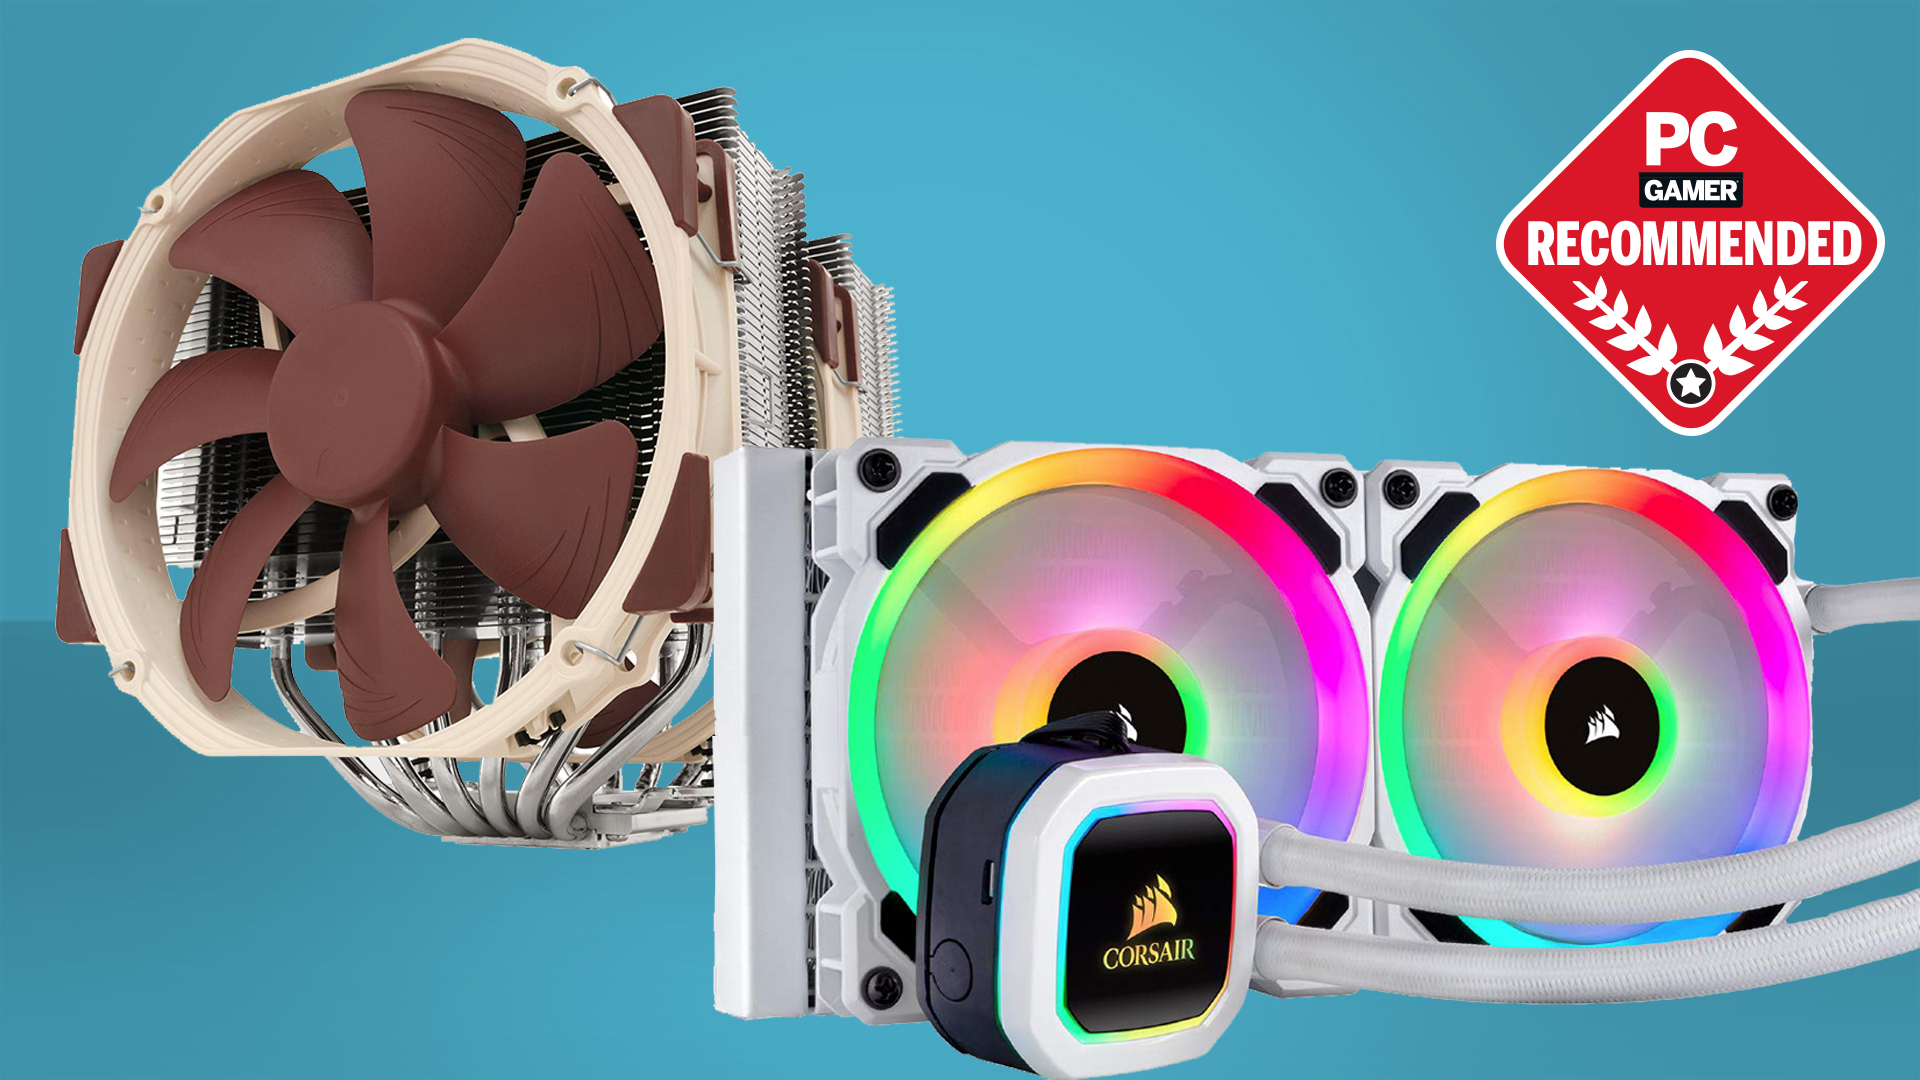 Best Aio Water Cooler 2021 The best CPU coolers 2020 | PC Gamer